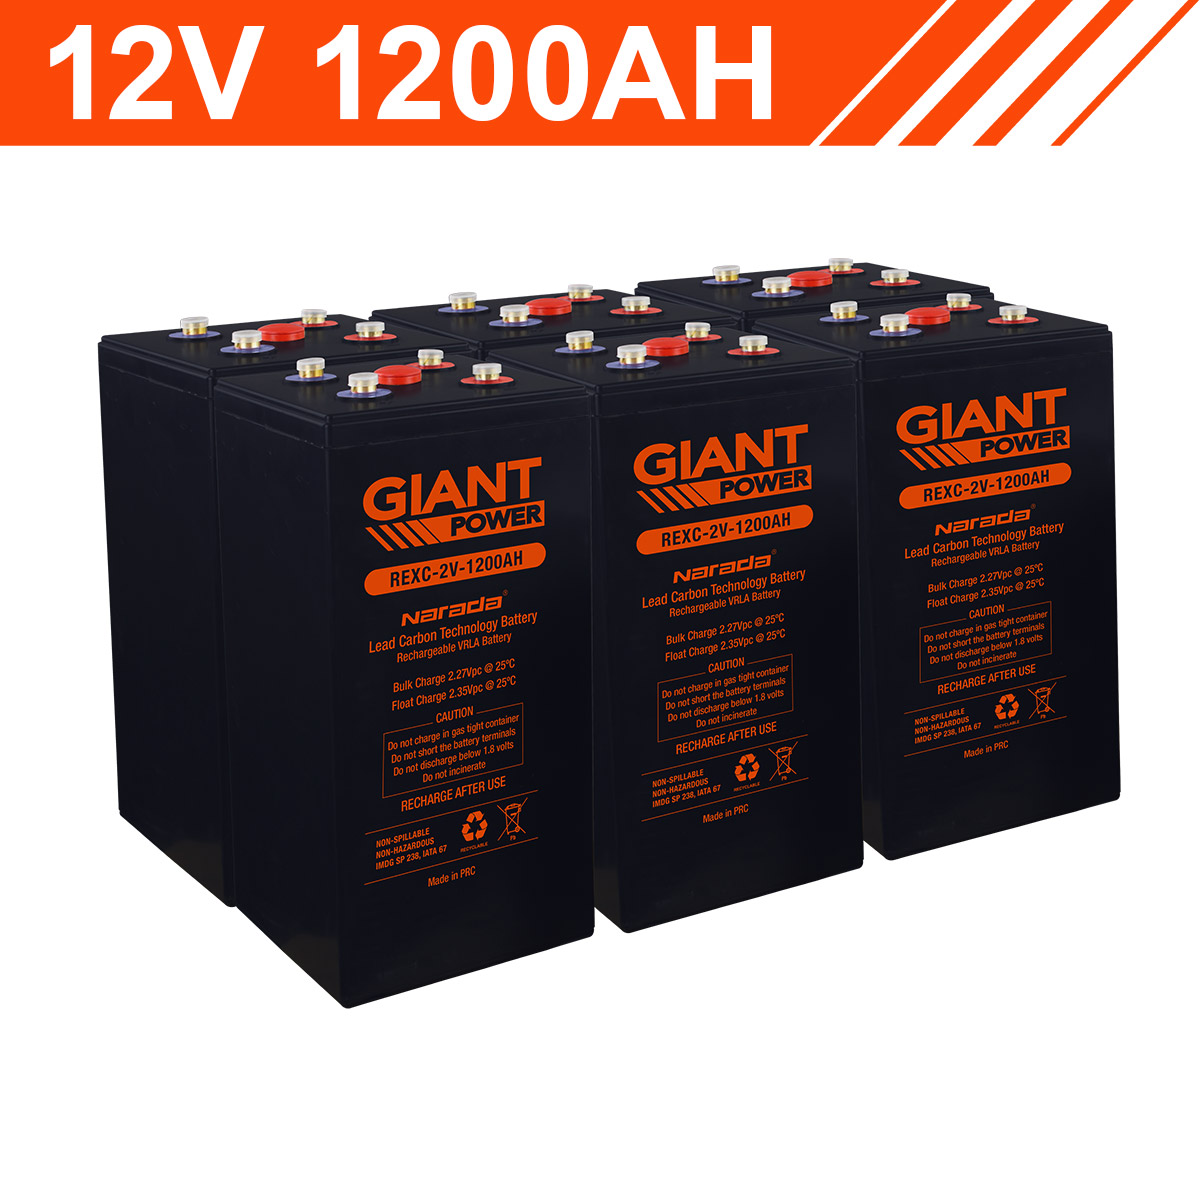 14 4kwh 12v 1200ah Lead Carbon Battery Bank 2v Cells